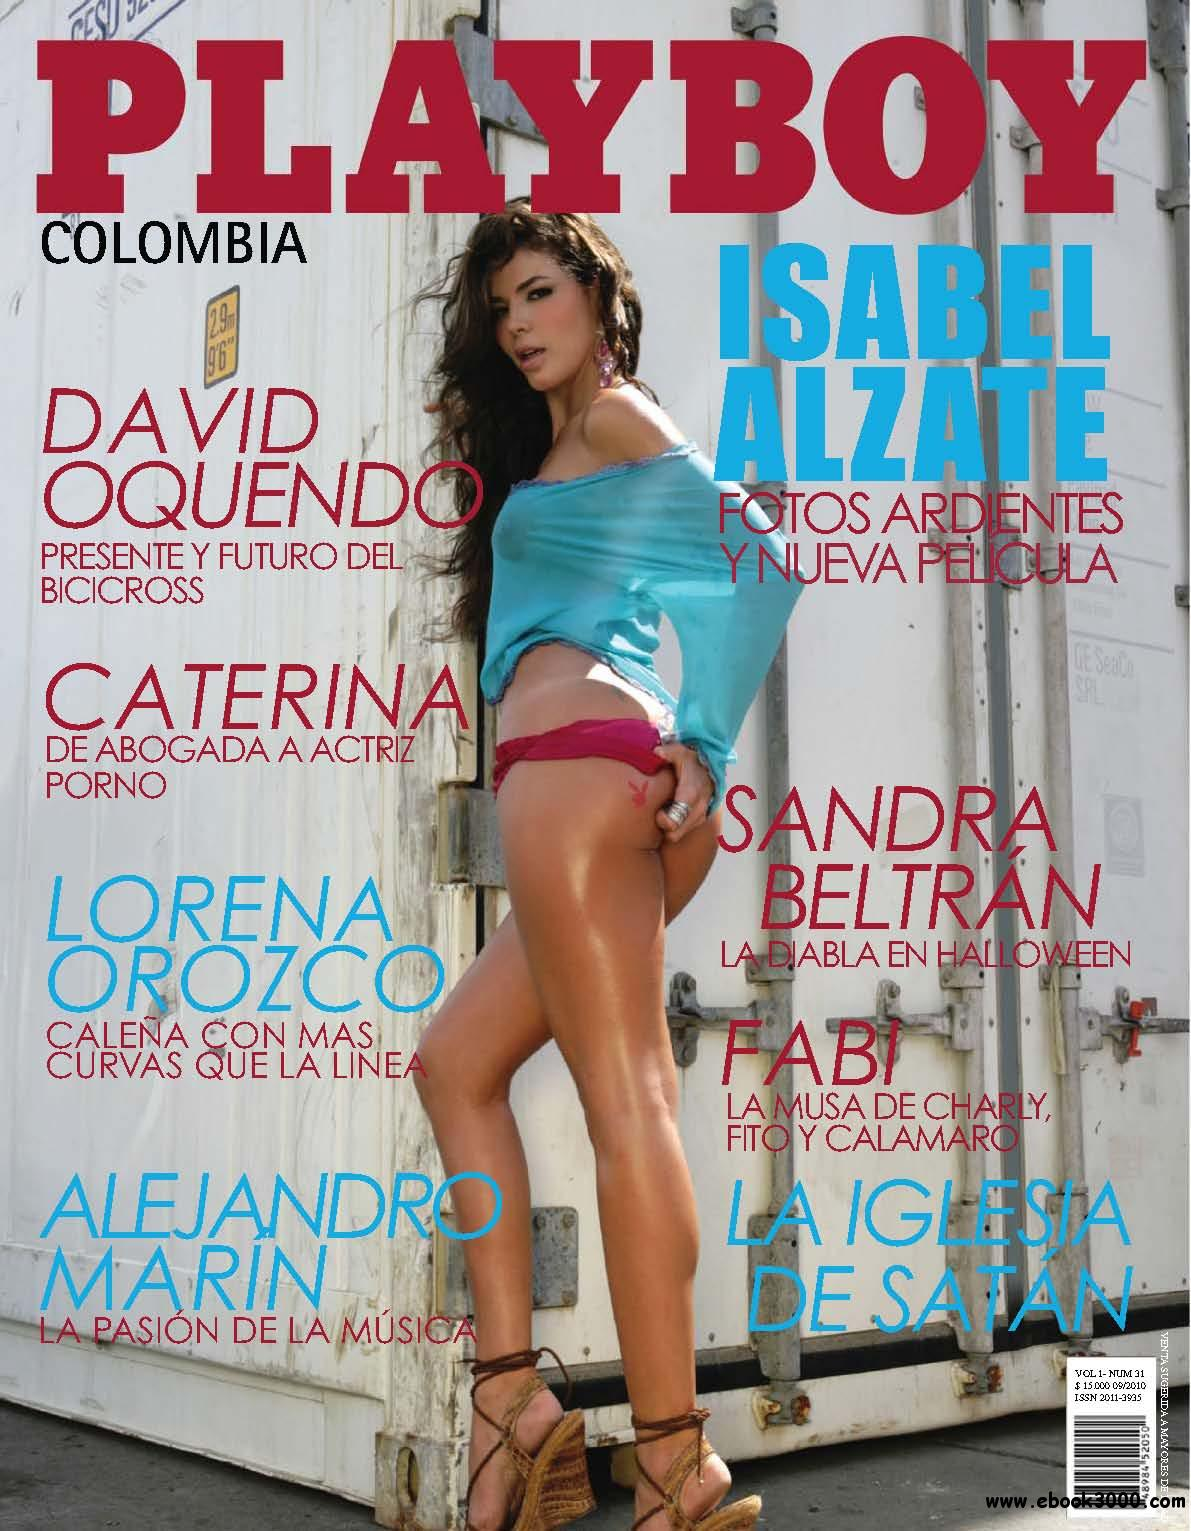 Playboy Colombia - October 2010 free download